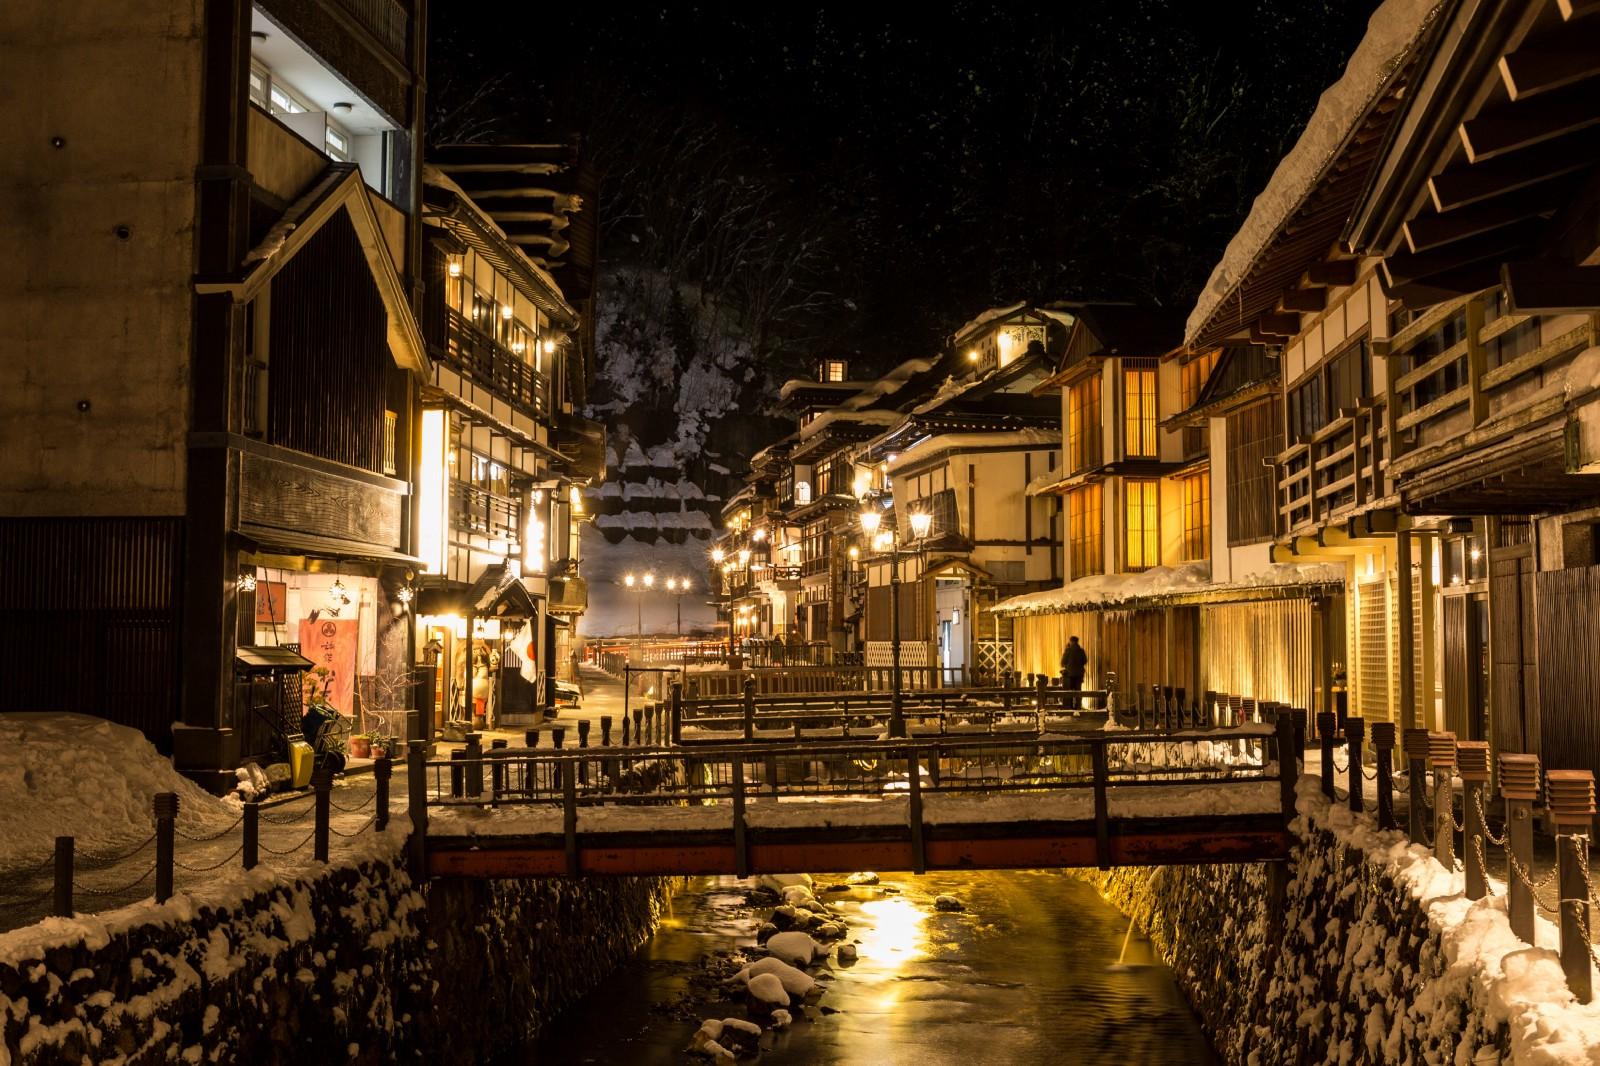 """321551d52c8 Ginzan (means """"Silver Mountain"""" in Japanese) Onsen is an Onsen town located  on the mountain in Yamagata Prefecture. The scenery of the town lined with  old ..."""